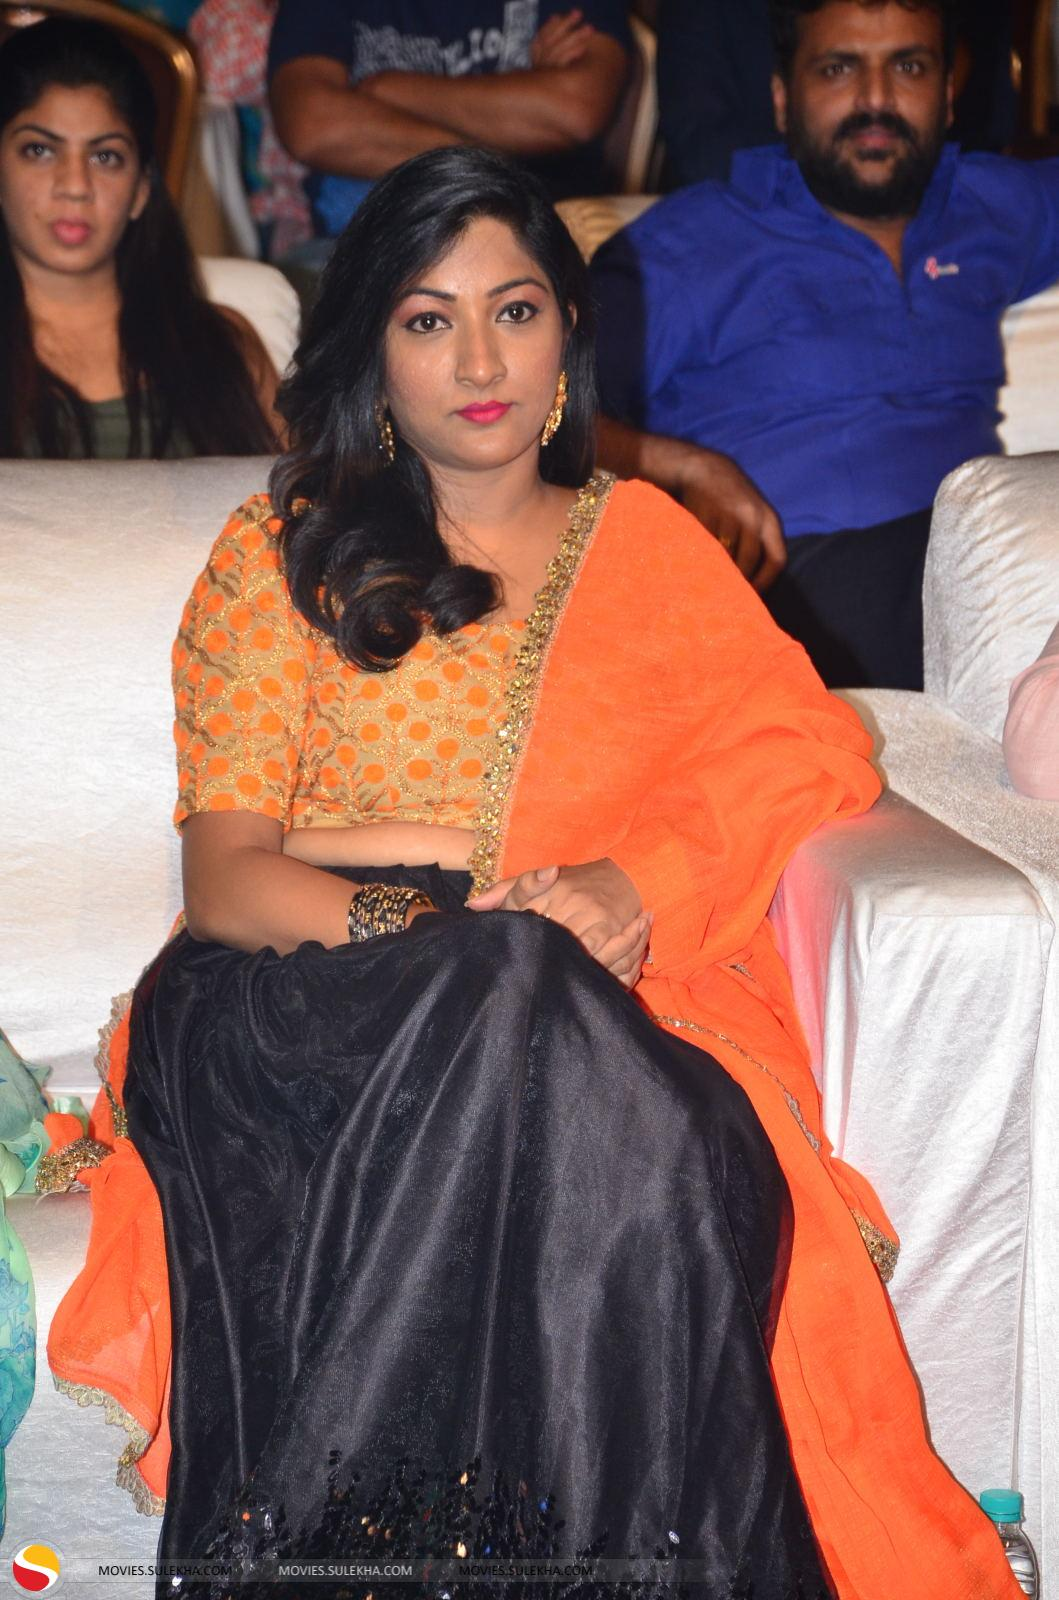 Fashion Designer S O Ladies Movie Tailor Pre Release Function Event Photo Event Photo 32 Sulekha Movies